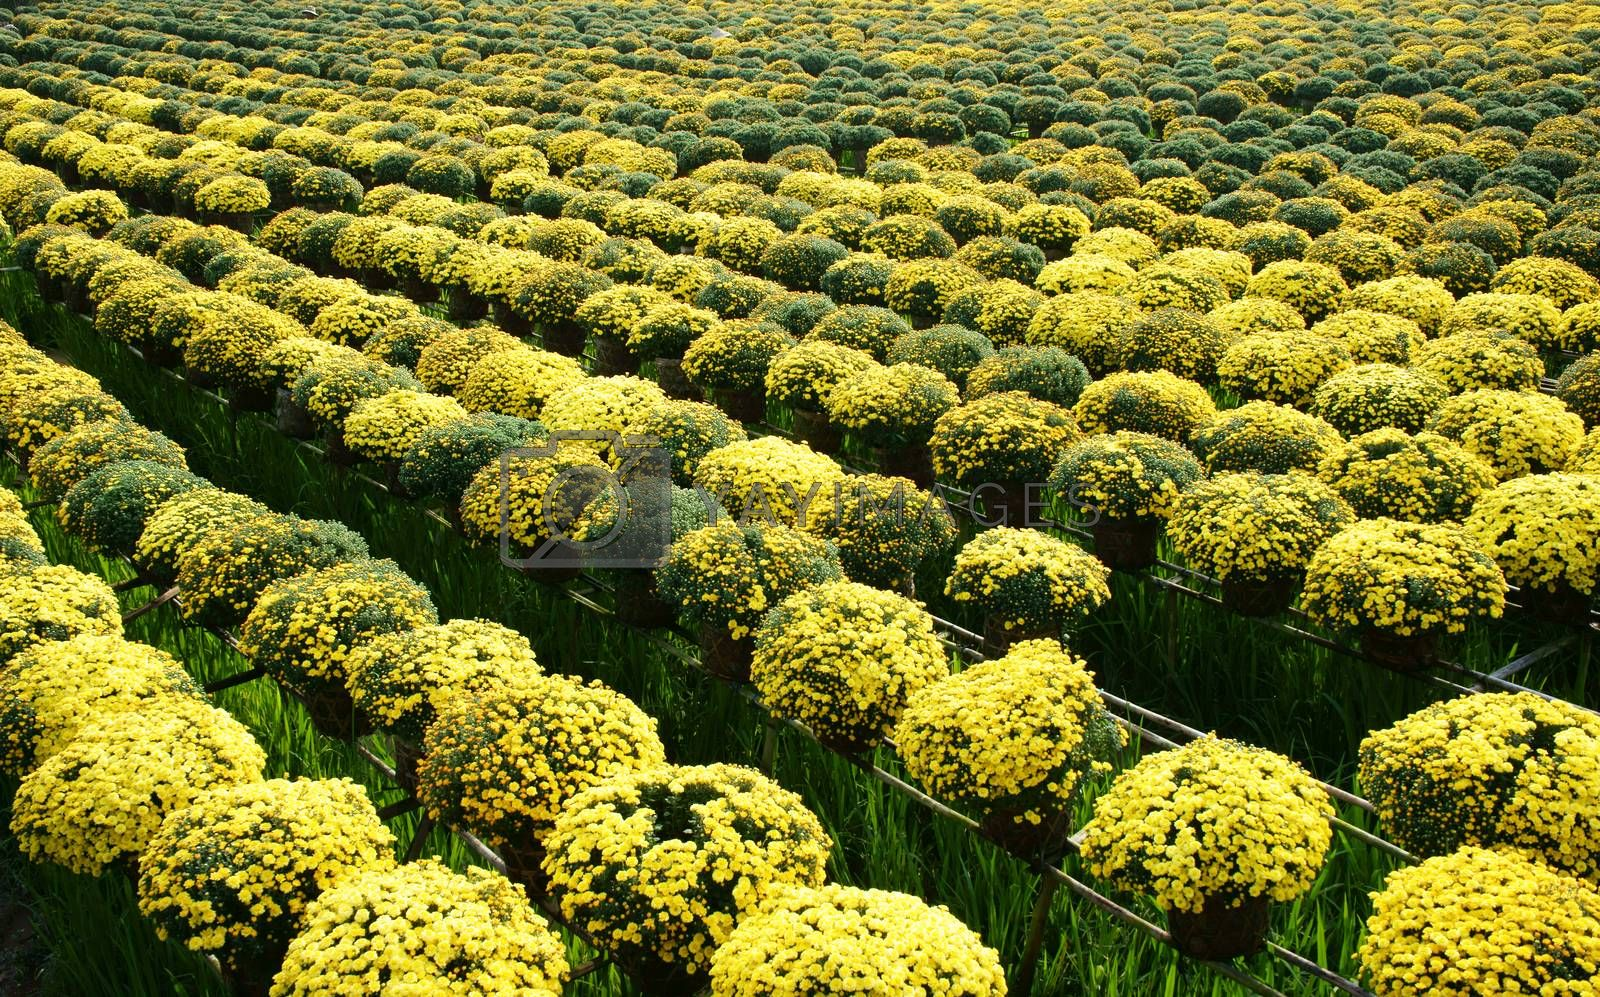 Success springtime crop with daisy flower blossom in bright yellow, ready for Vietnam Tet ( Lunar New Year)